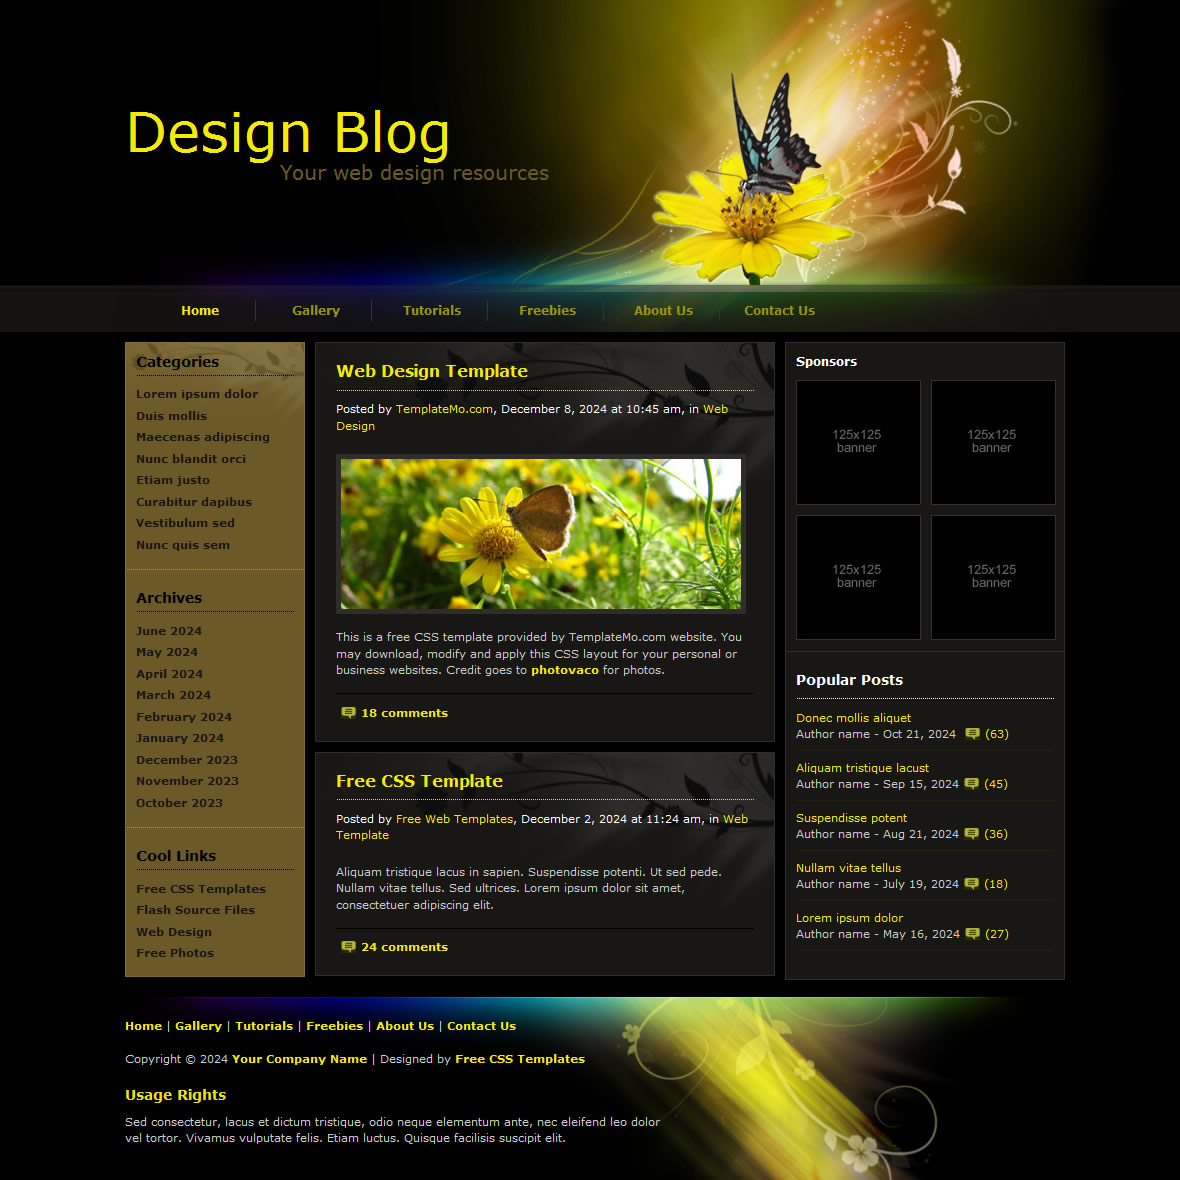 templatemo 084 design blog